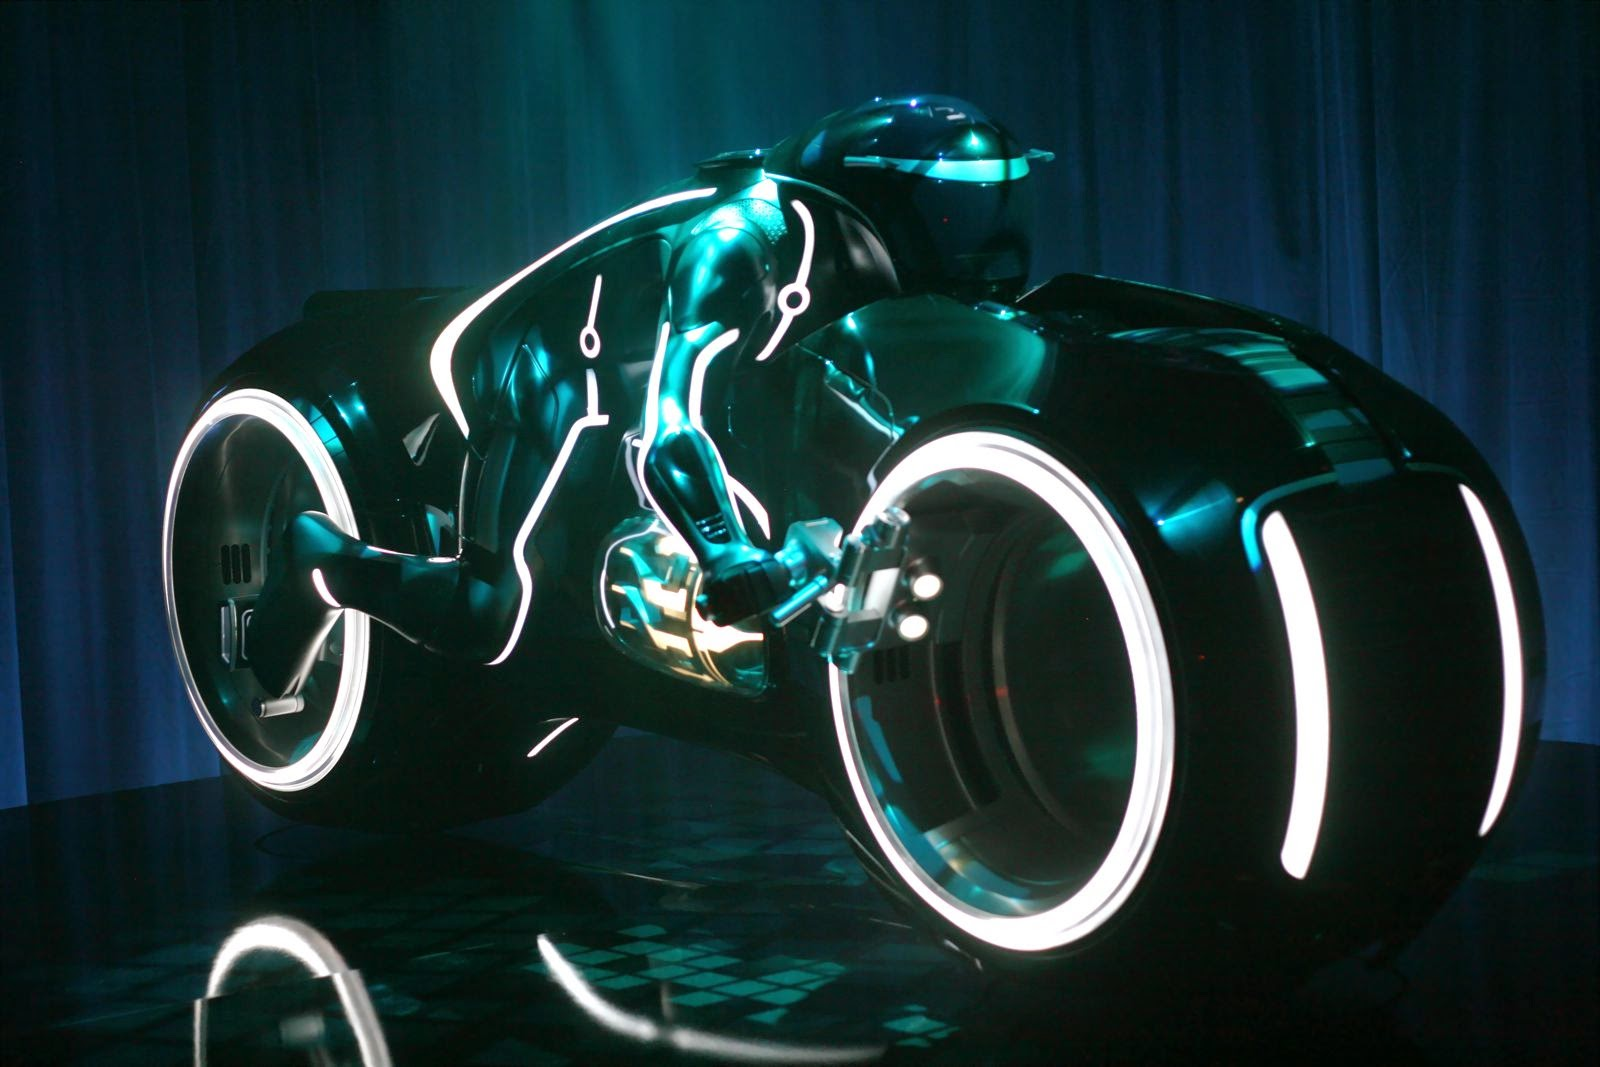 Download Tron Amazing HD Wallpaper For Pc Mobile Devices Wallpapers DownloadTron Images Ultra Hd ImagesTron Live WallpapersTron Screen Savers